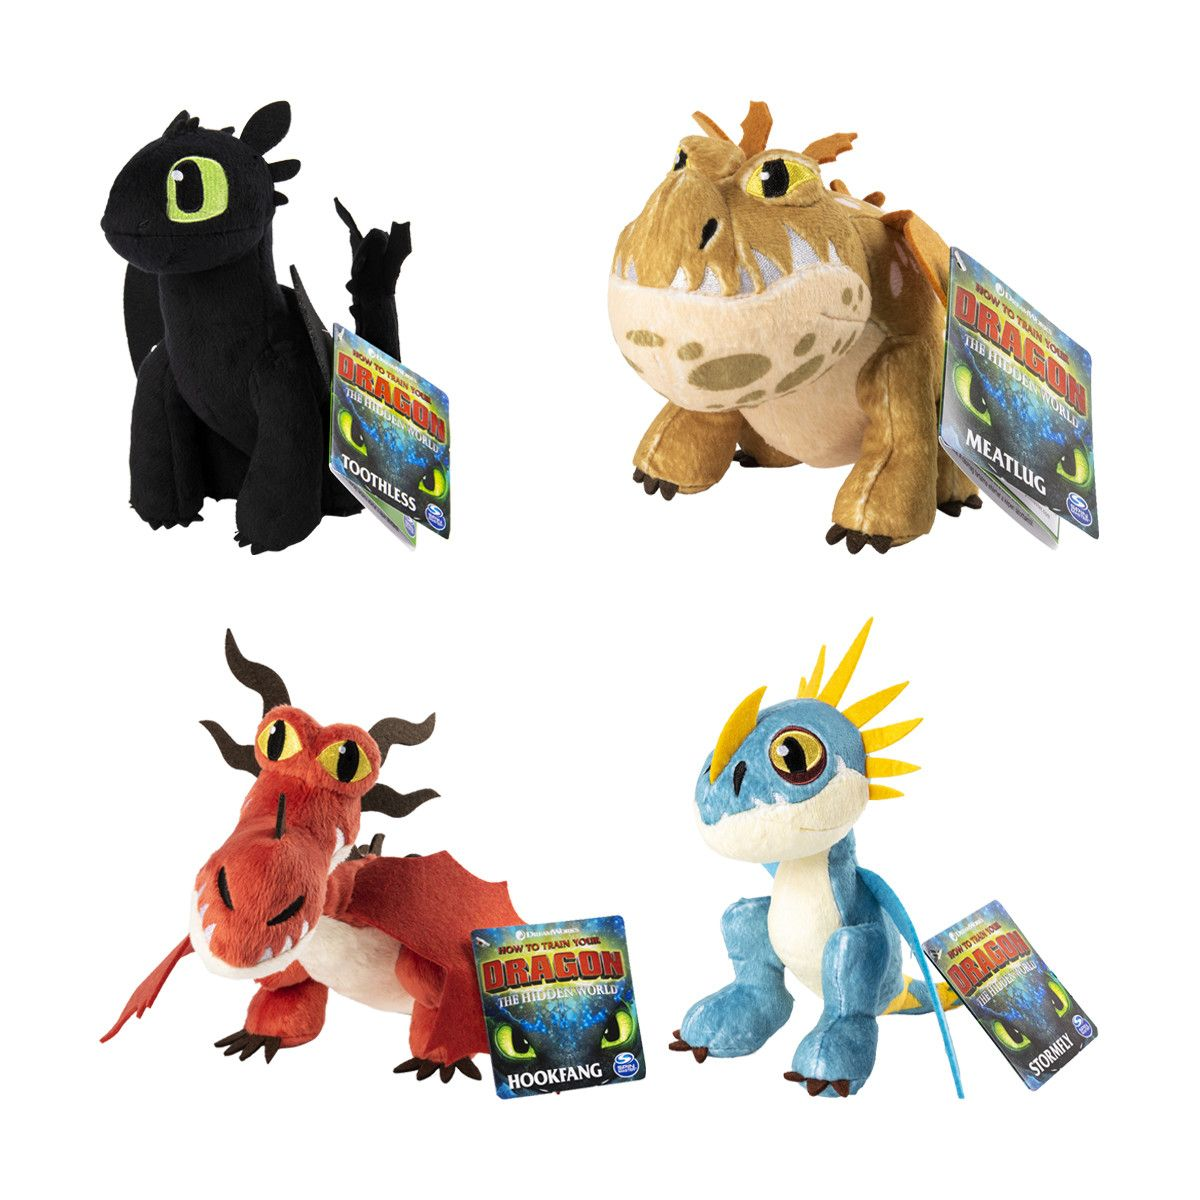 Dreamworks how to train your dragon plush toy assorted